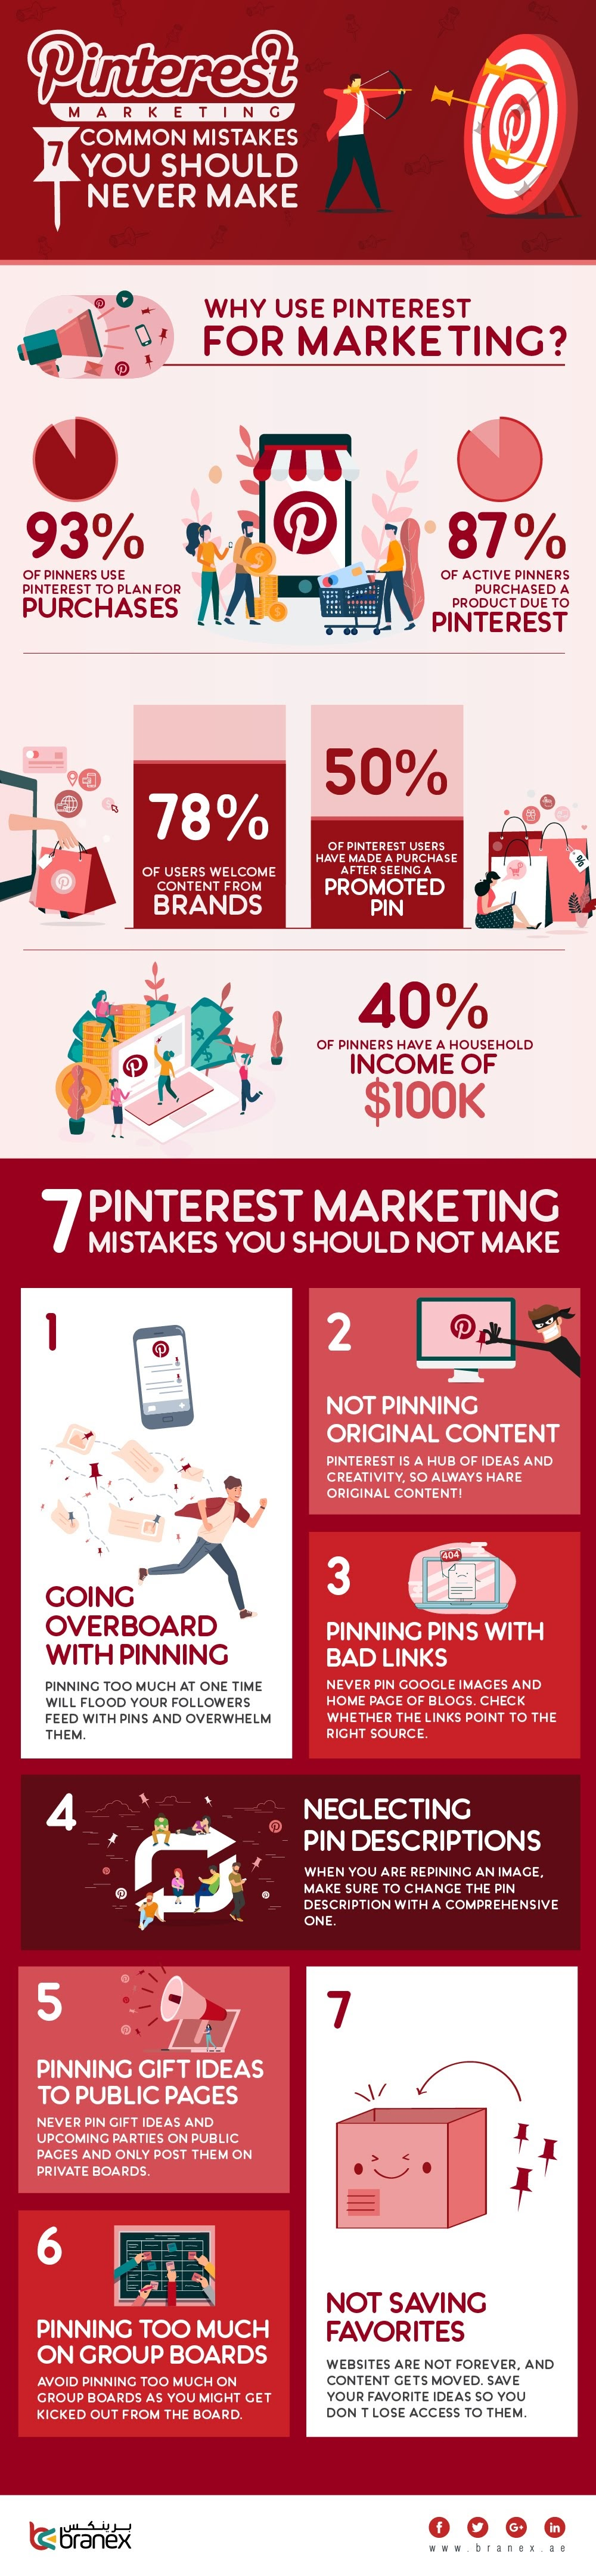 Pinterest Marketing: 7 Common Mistakes You Should Never Make #infographic